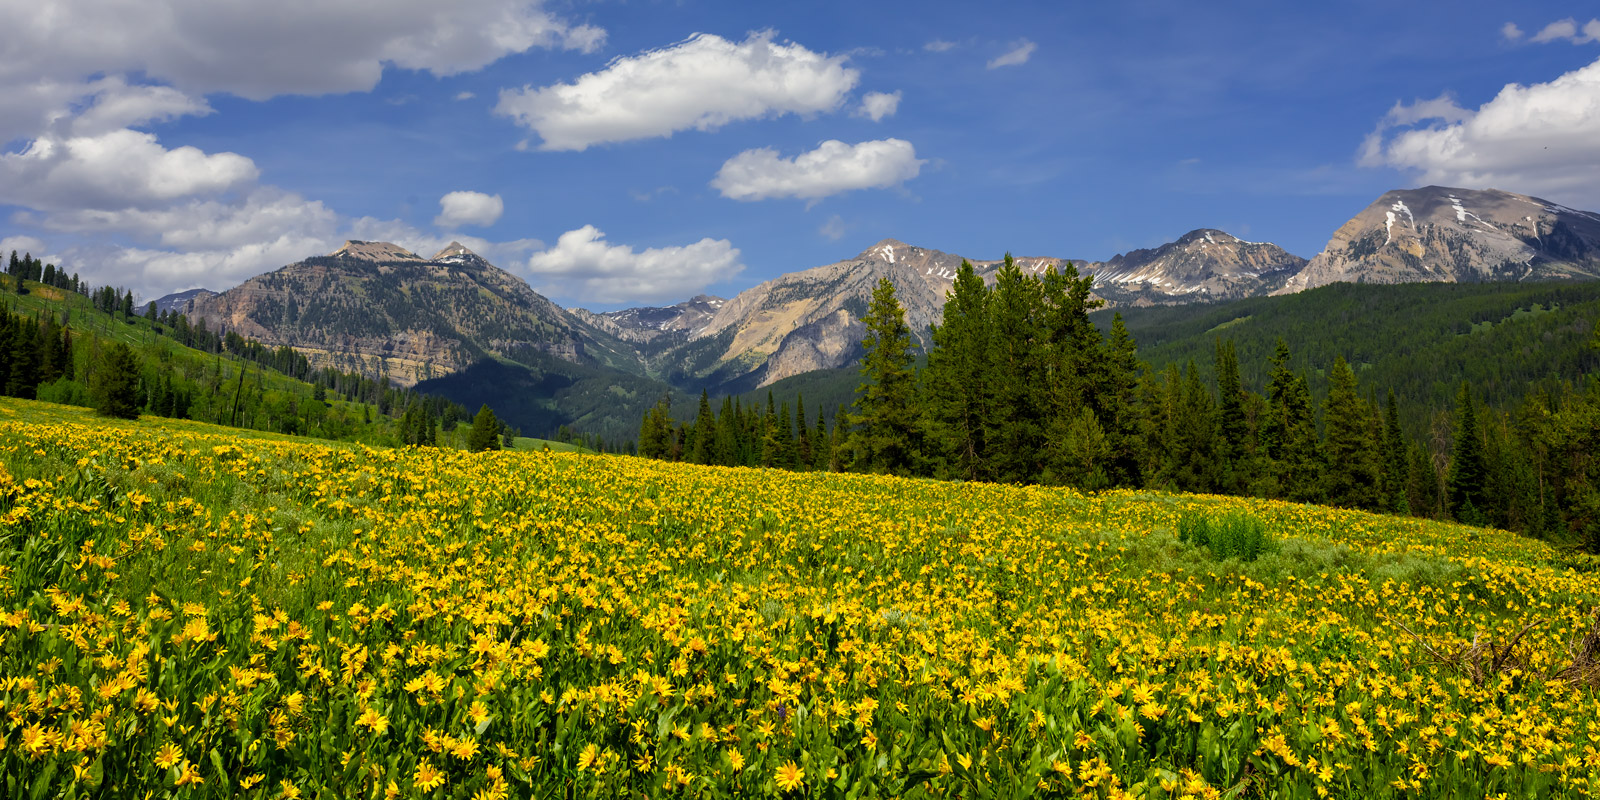 Yellow balsomroot flowers and mountains in wyoming